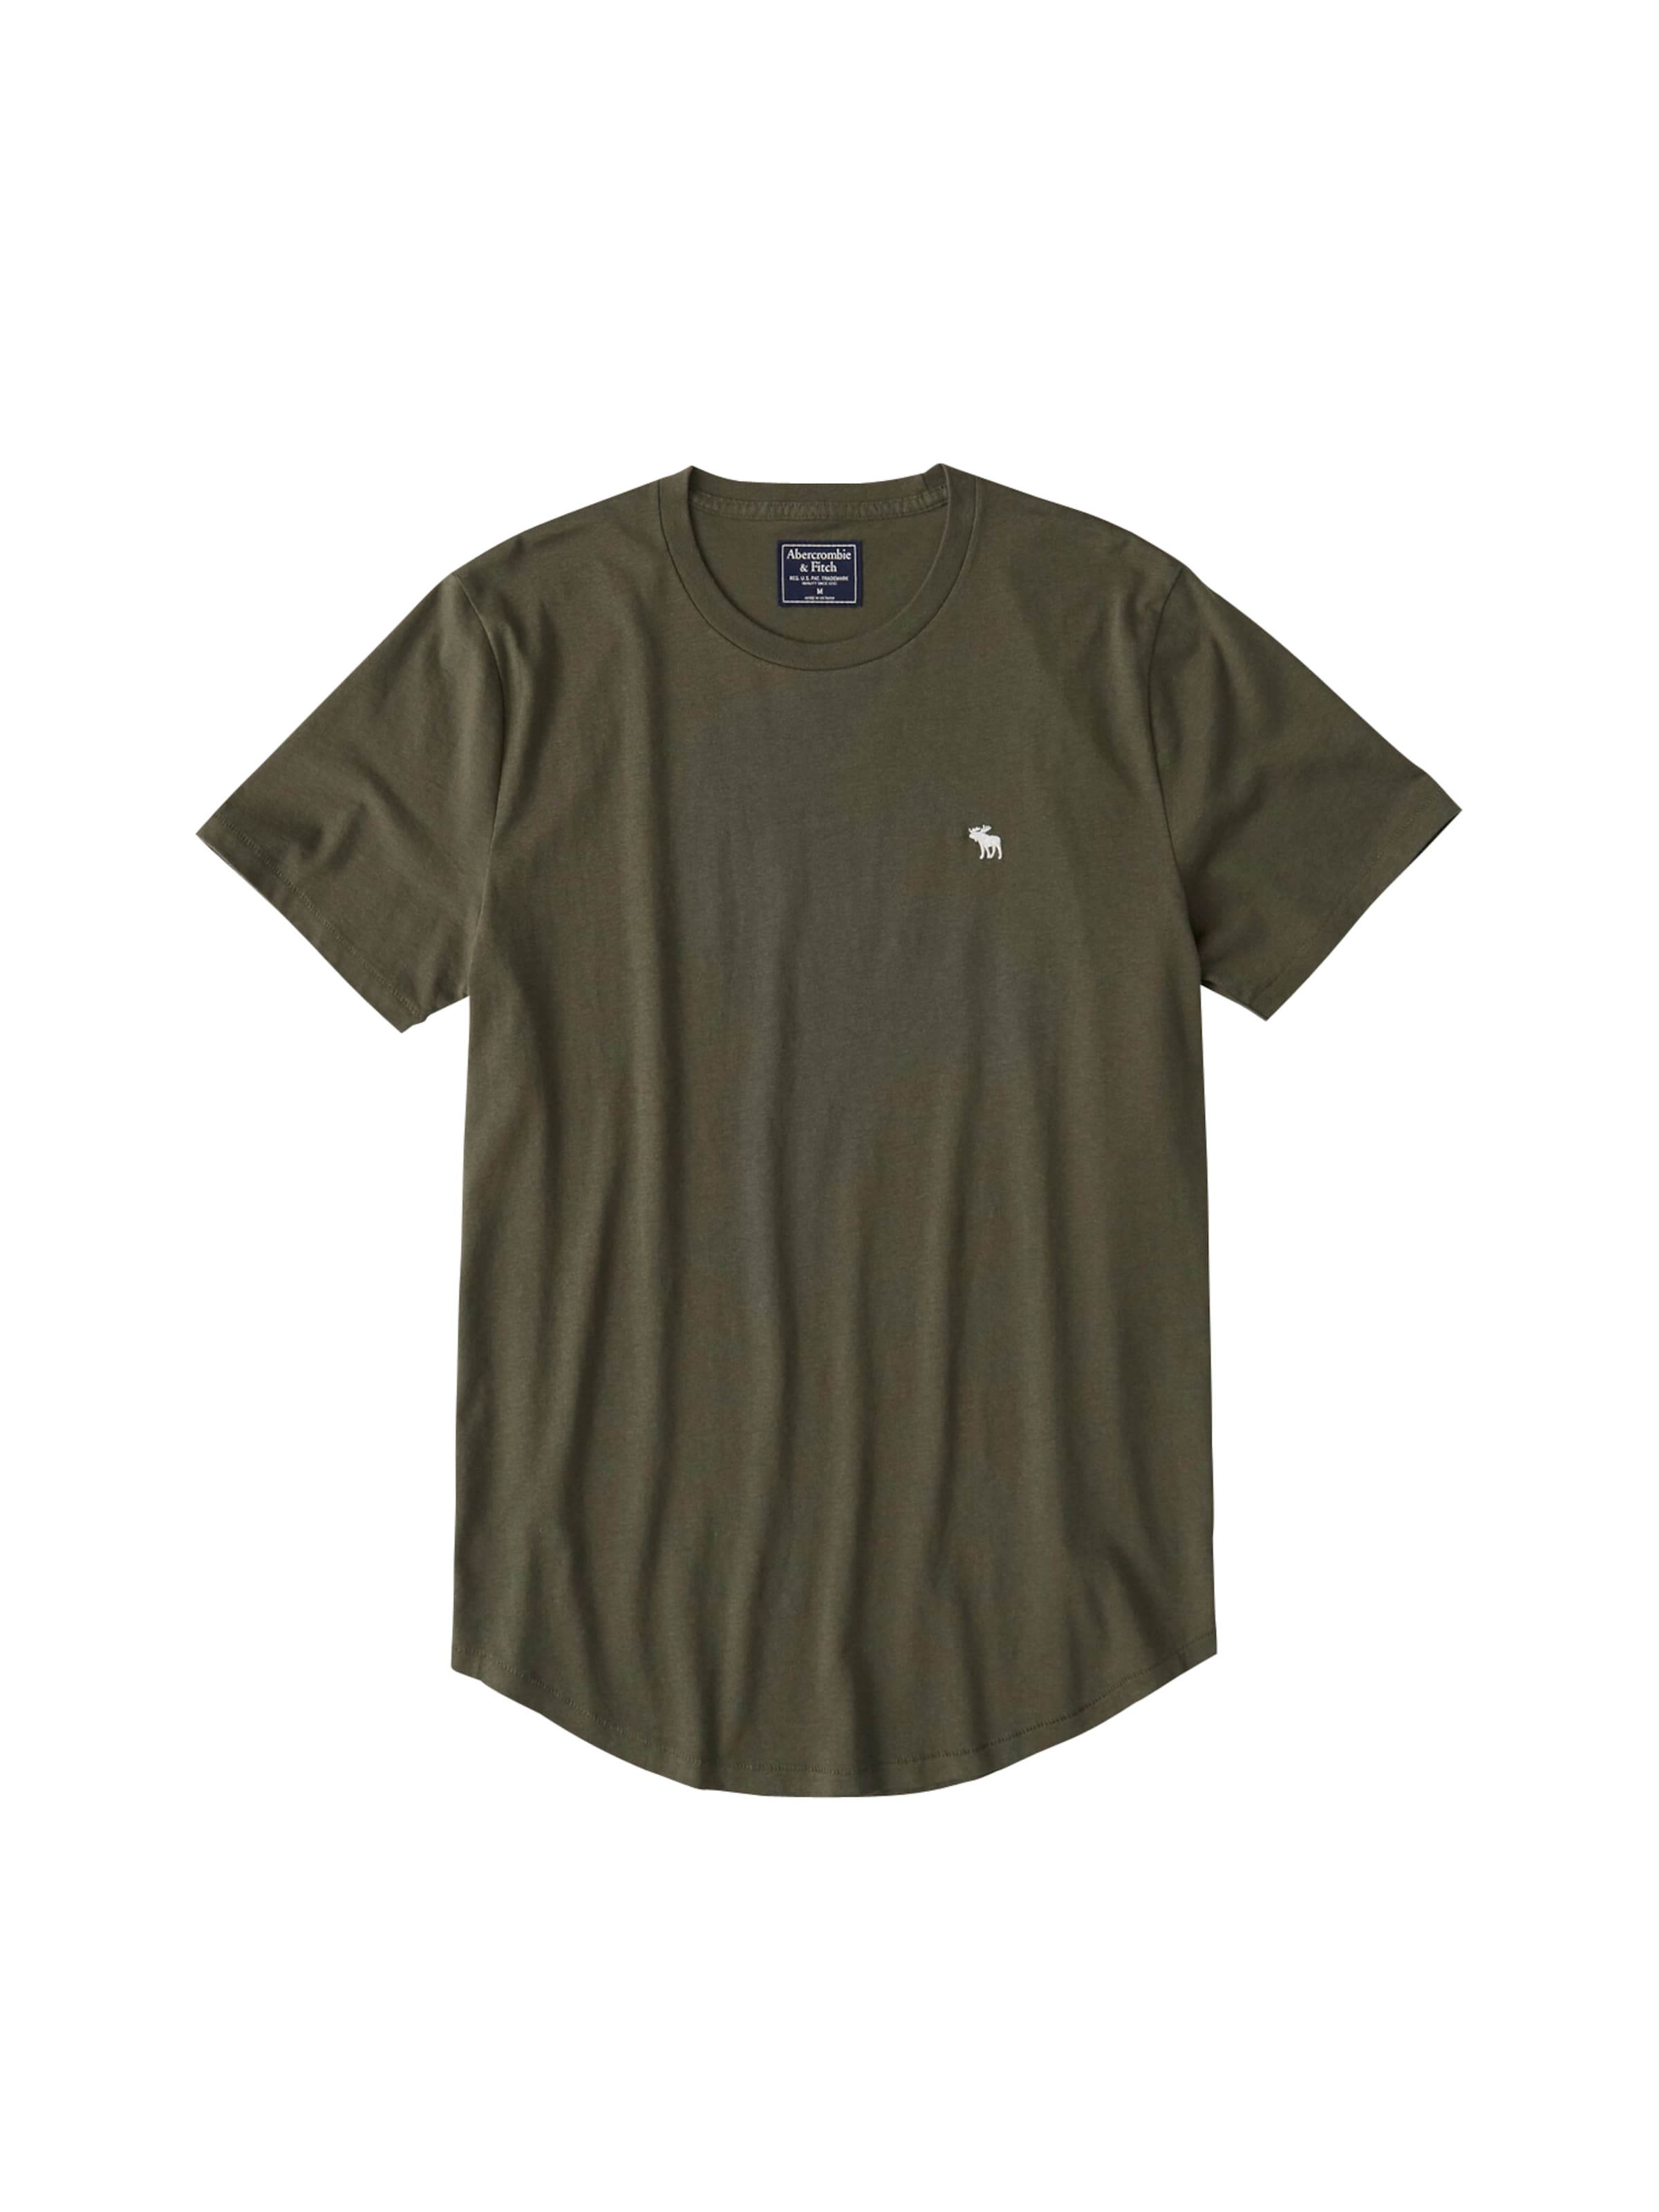 Fitch In Abercrombieamp; Oliv Shirt Fitch Abercrombieamp; ulJ3F1KcT